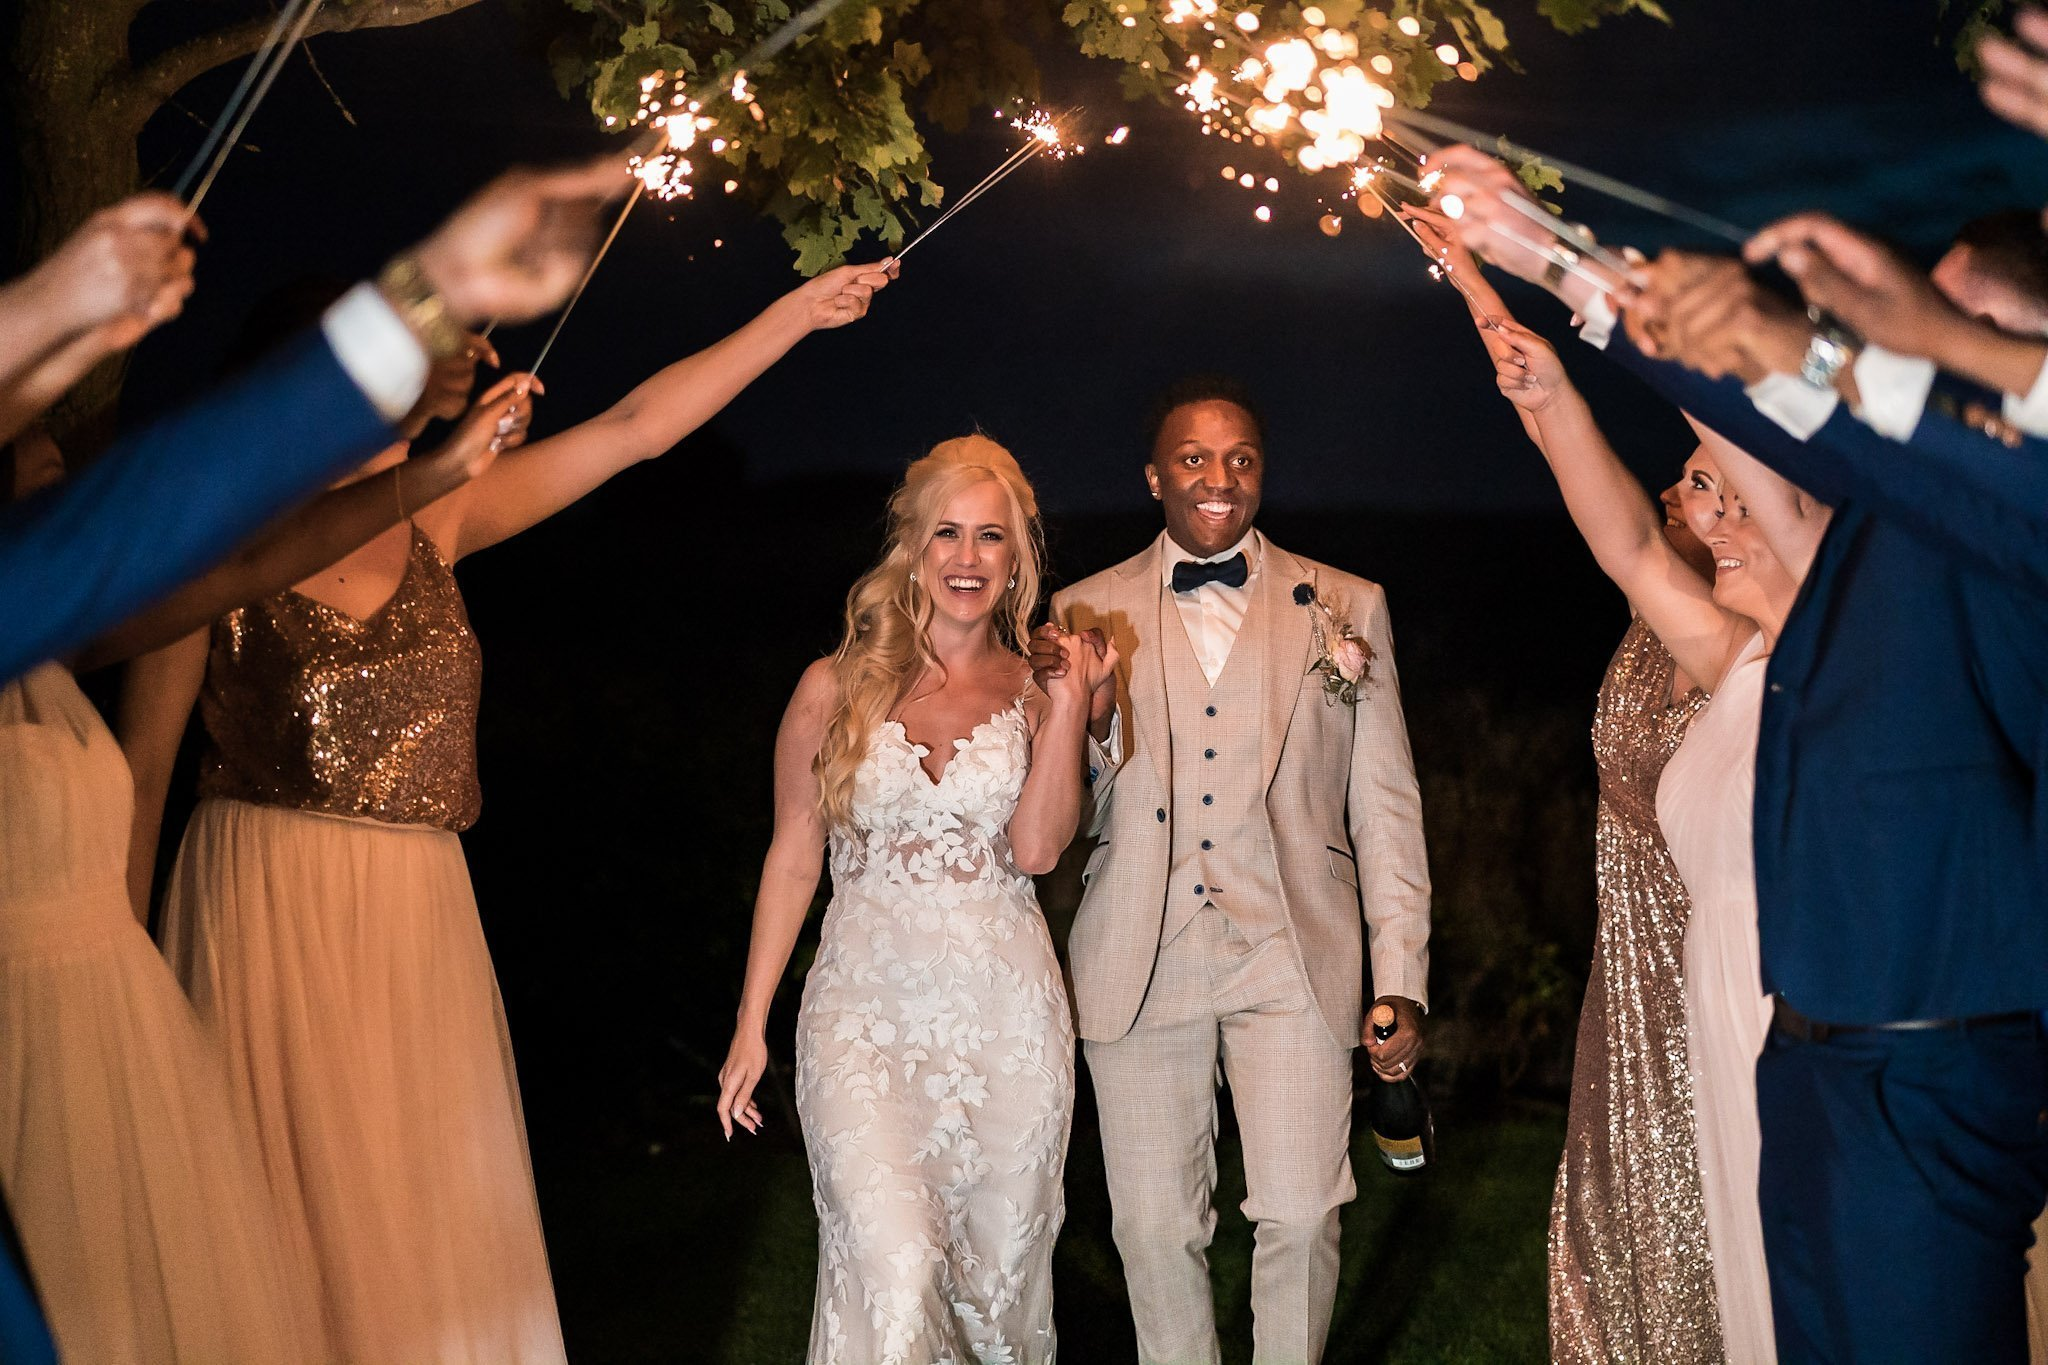 Your Favourite Frame YFFUK Mwasuku Norton Fields Atherstone sparkler arch over the bride and groom